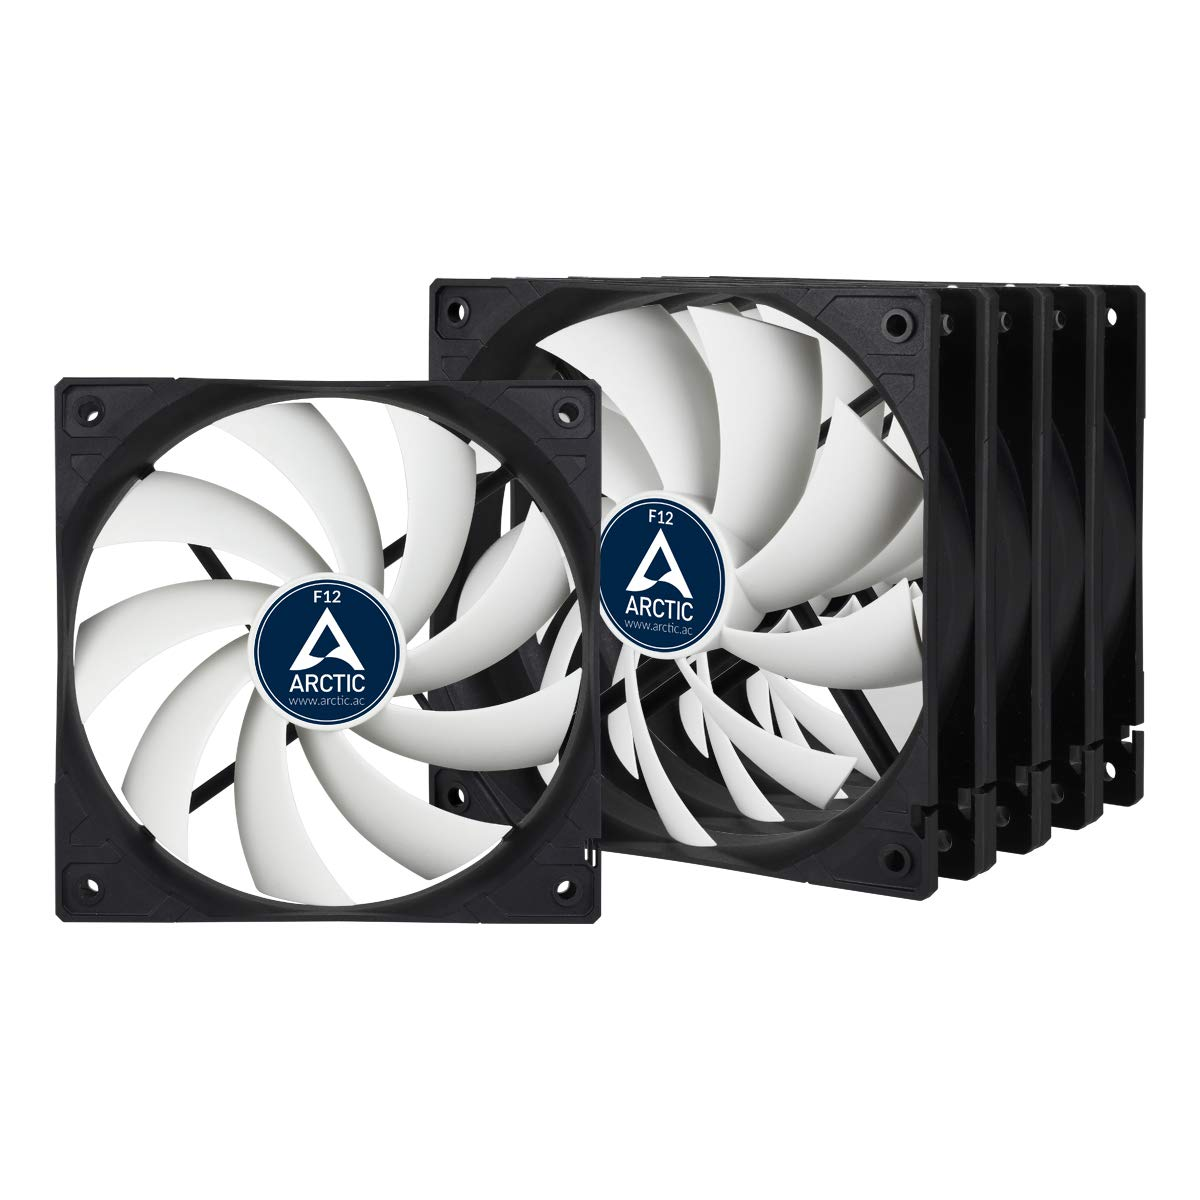 ARCTIC F12-120 mm Standard Case Fan - Five Pack | Ultra Low Noise Cooler | Silent Cooler with Standard Case | Push- or Pull Configuration possible